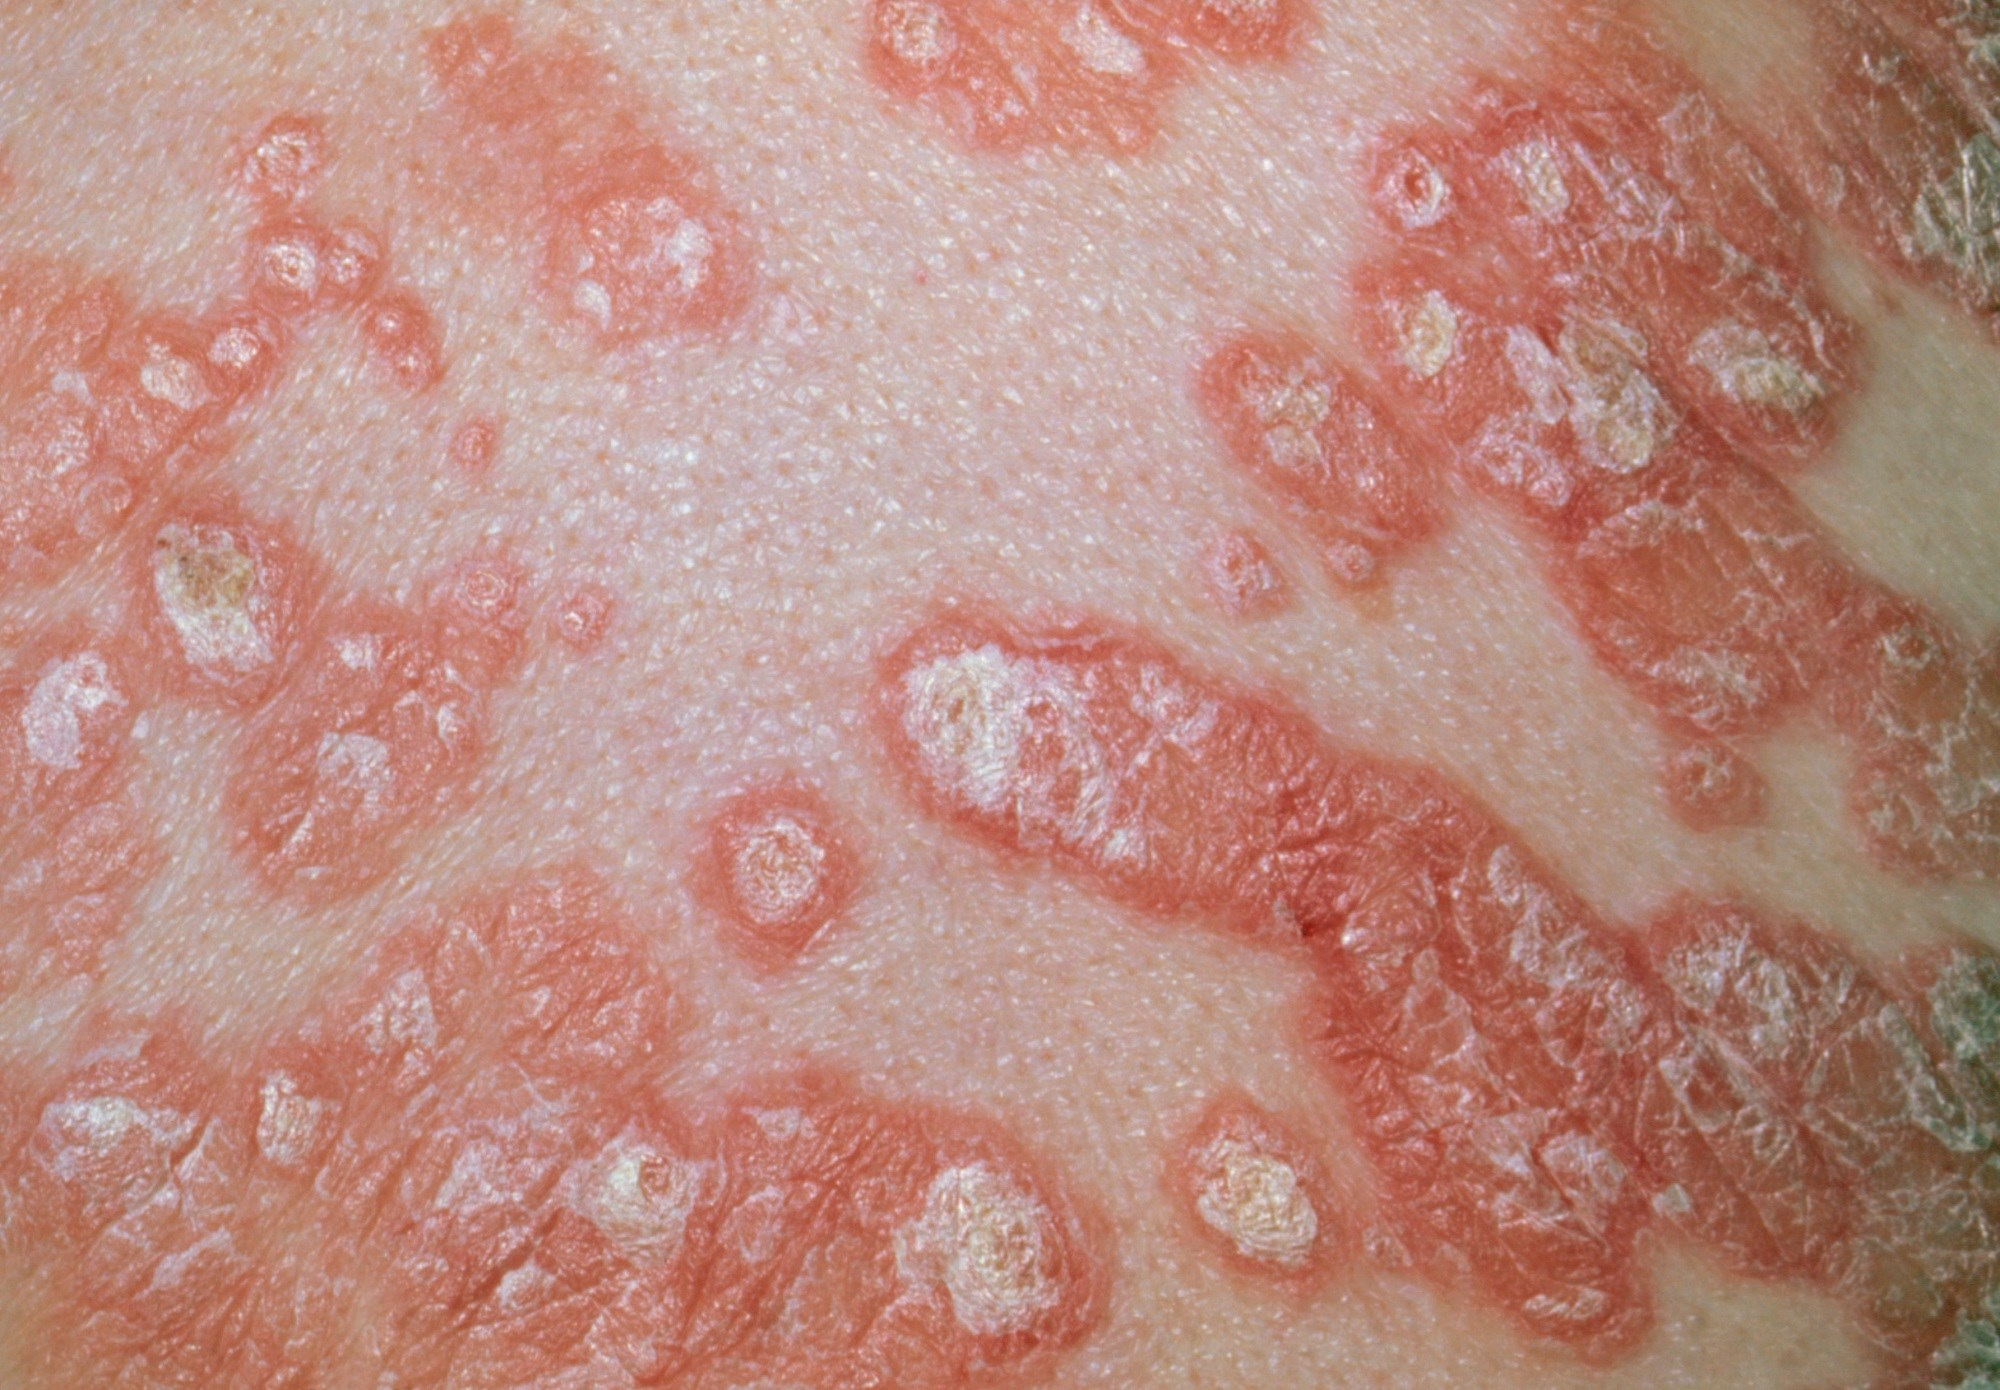 Evidence Lacking for Persistence and Effectiveness of Systemic Psoriasis Therapies